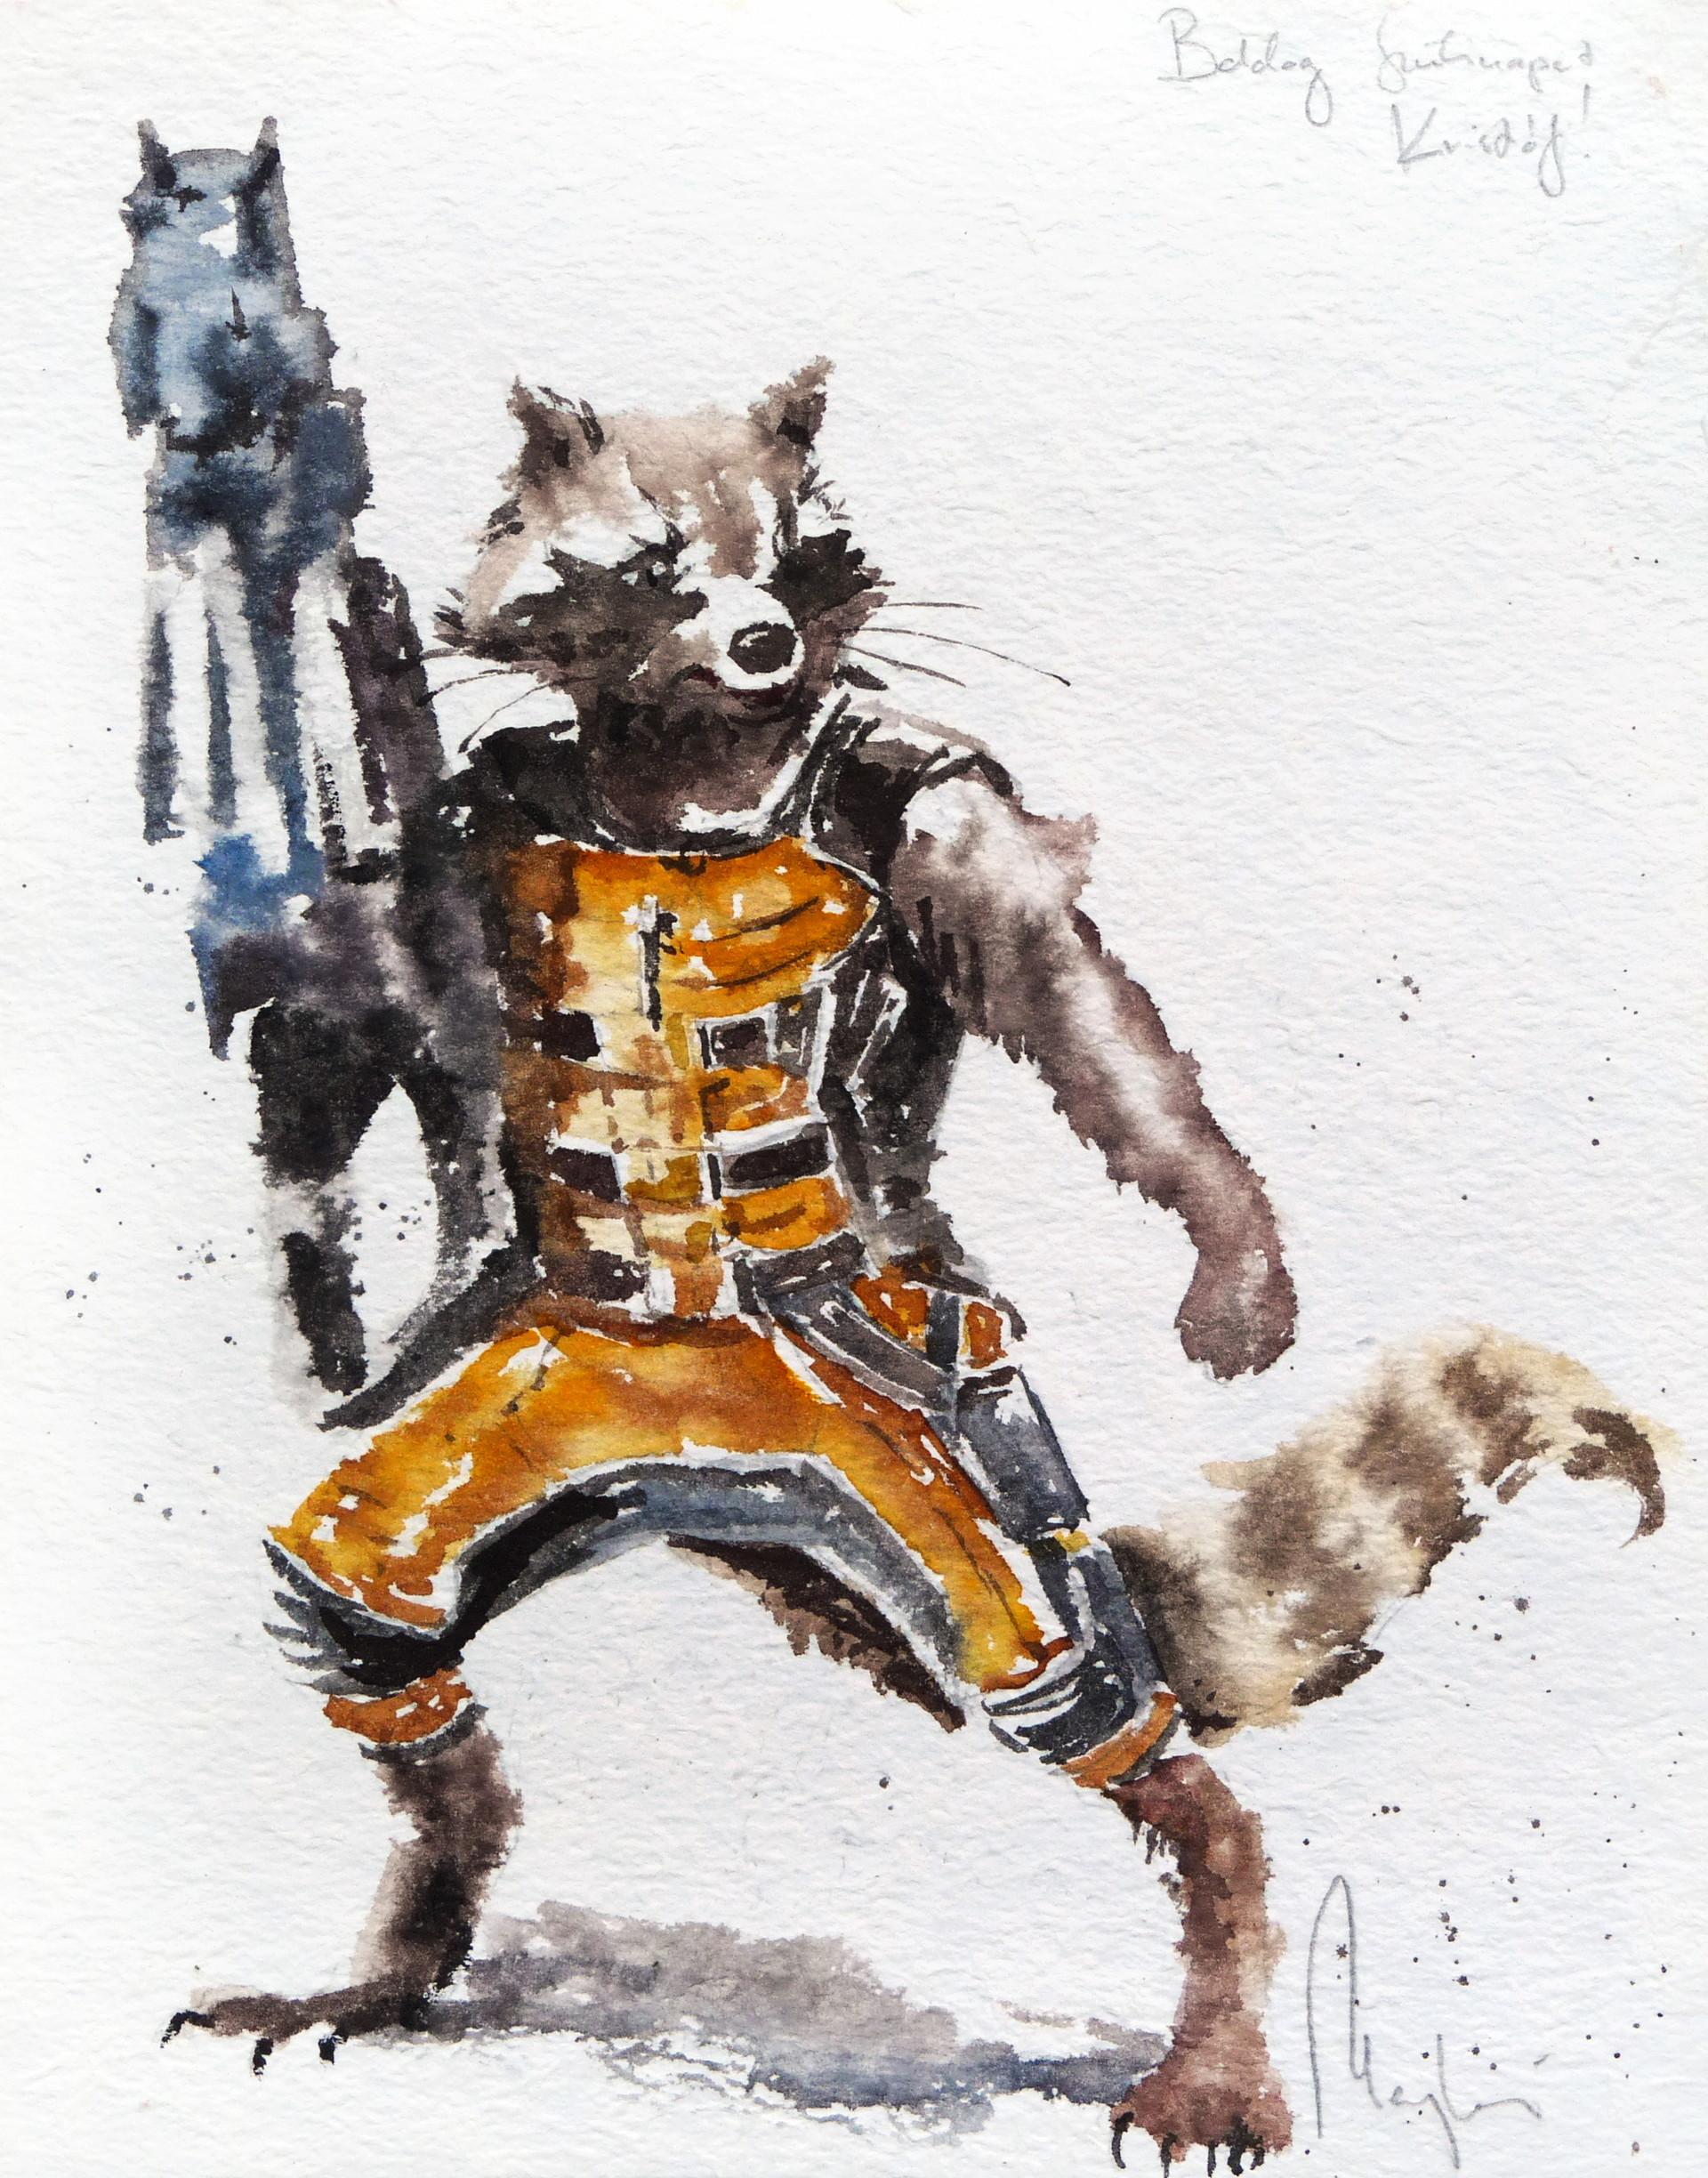 Saby menyhei rocket raccoon 1